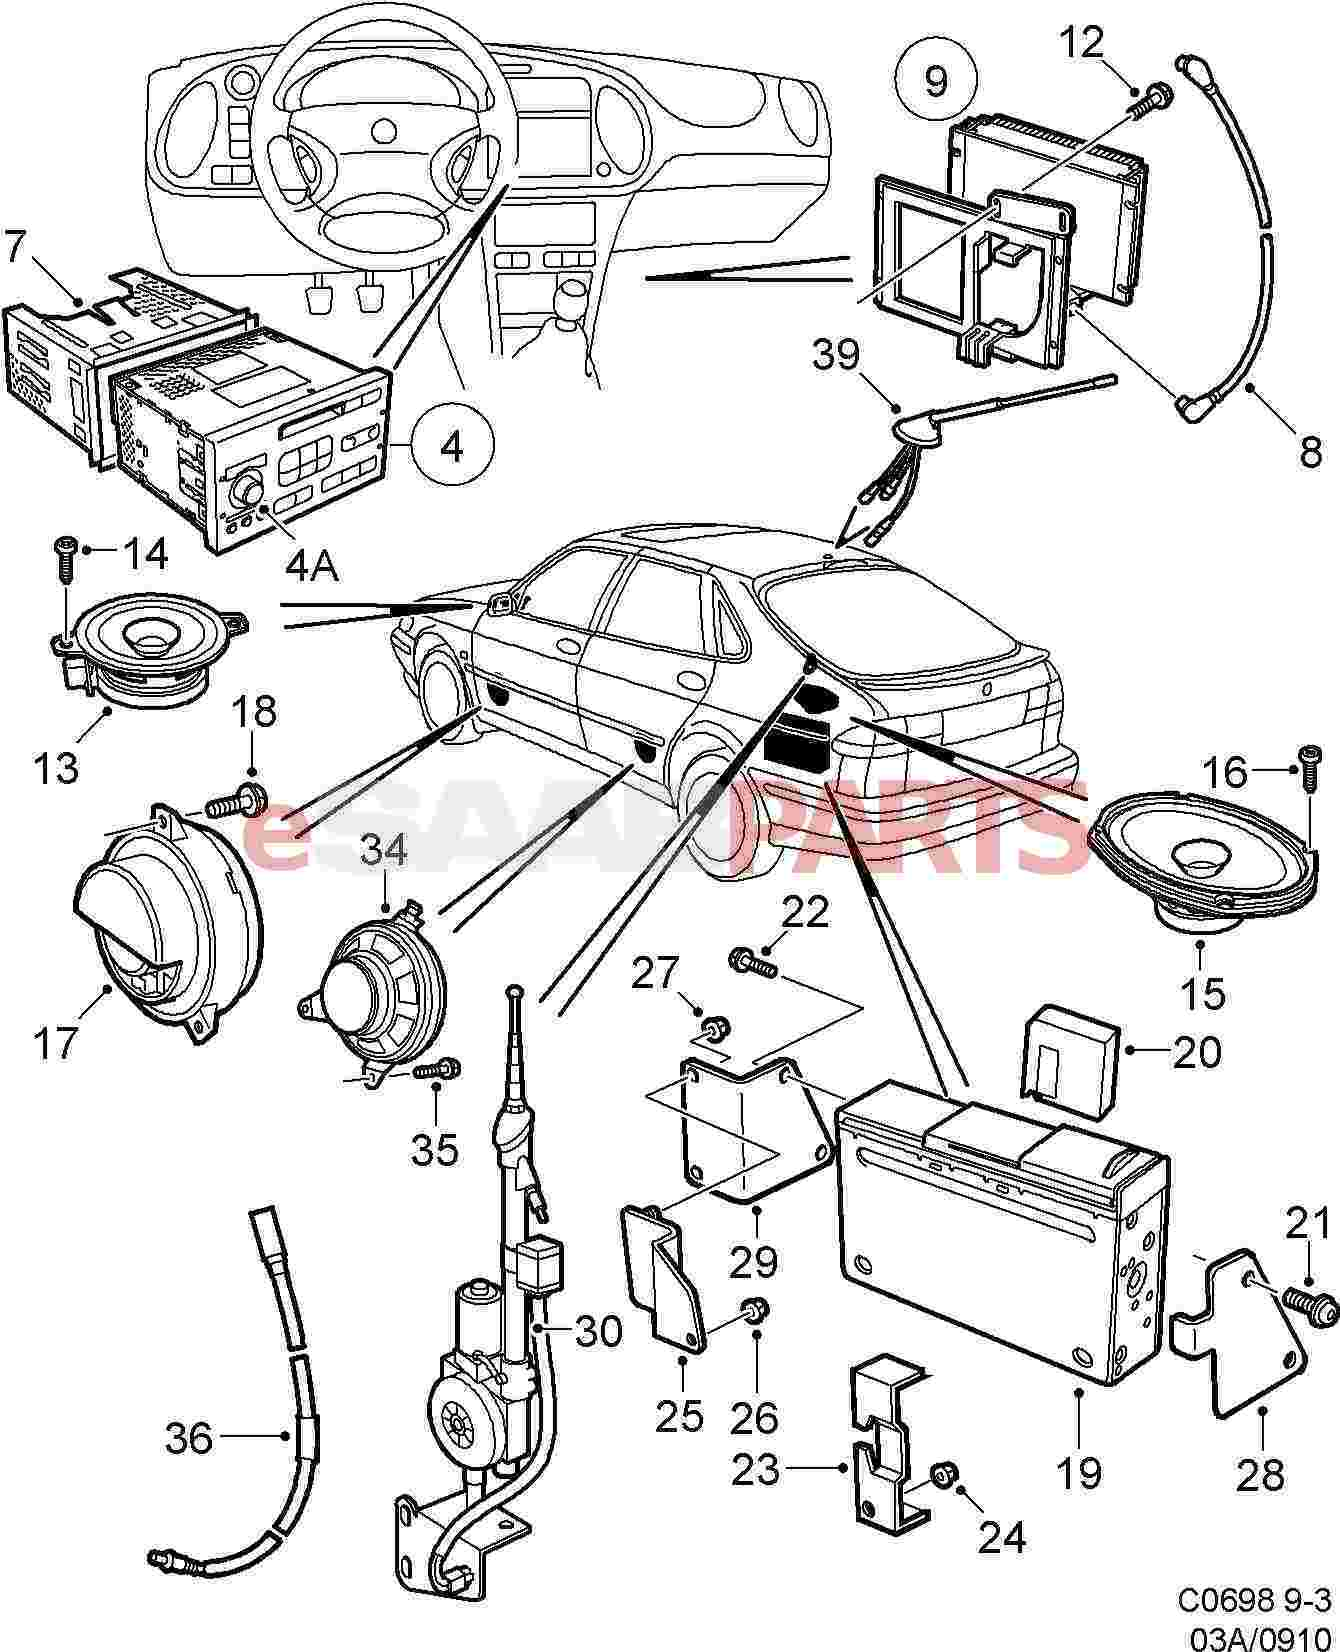 Diagram Wiring Diagram Saab 93 Espa Ol Full Version Hd Quality Espa Ol Diagramdukeso Gisbertovalori It